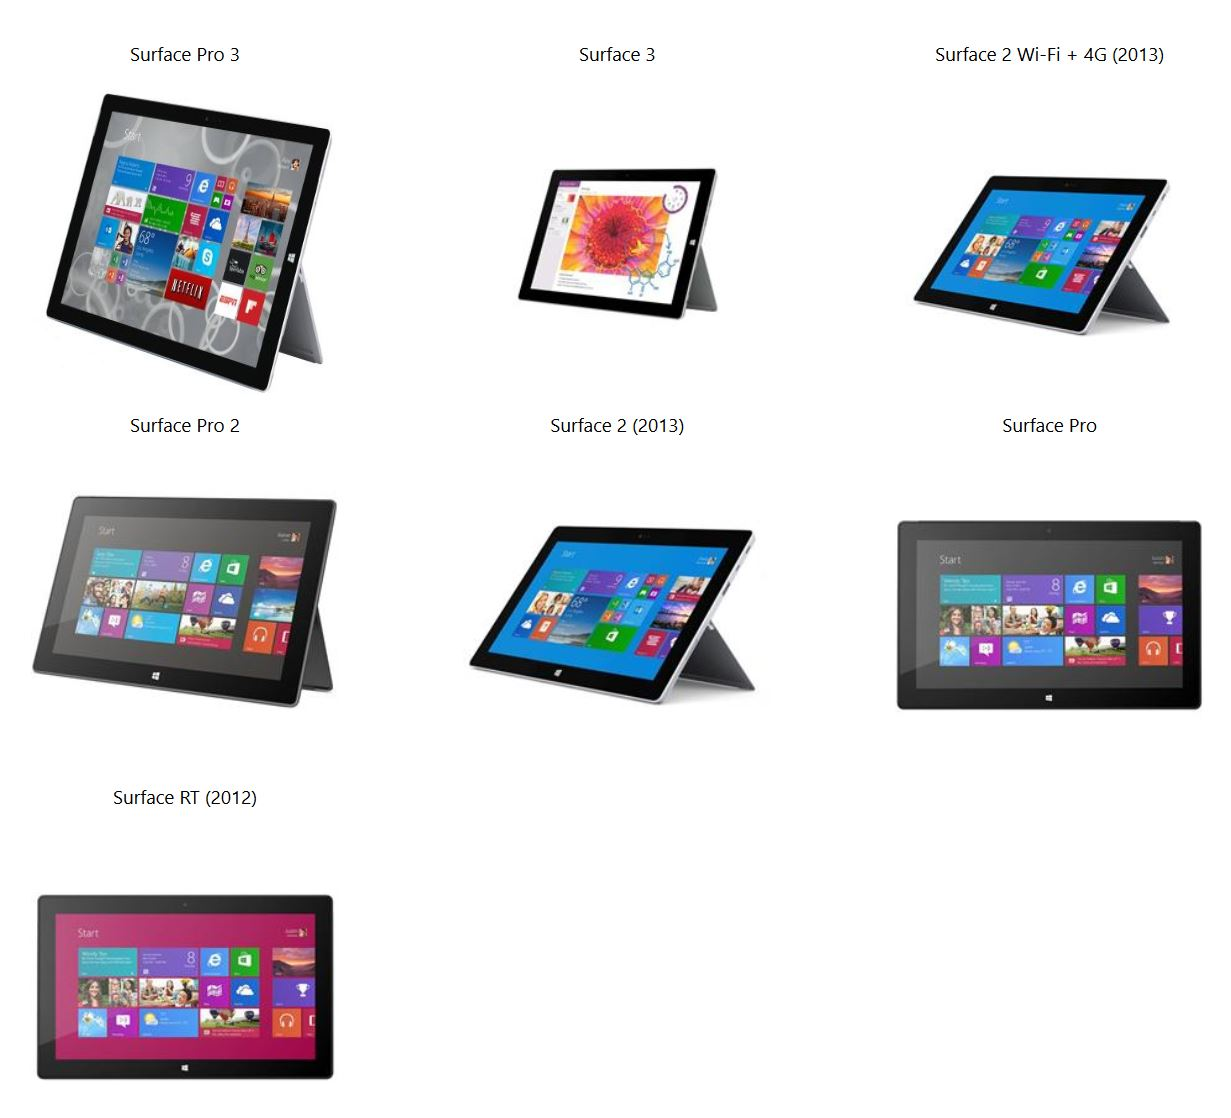 Trade In Your Old Surface Device To Get Up To $700 Toward A New